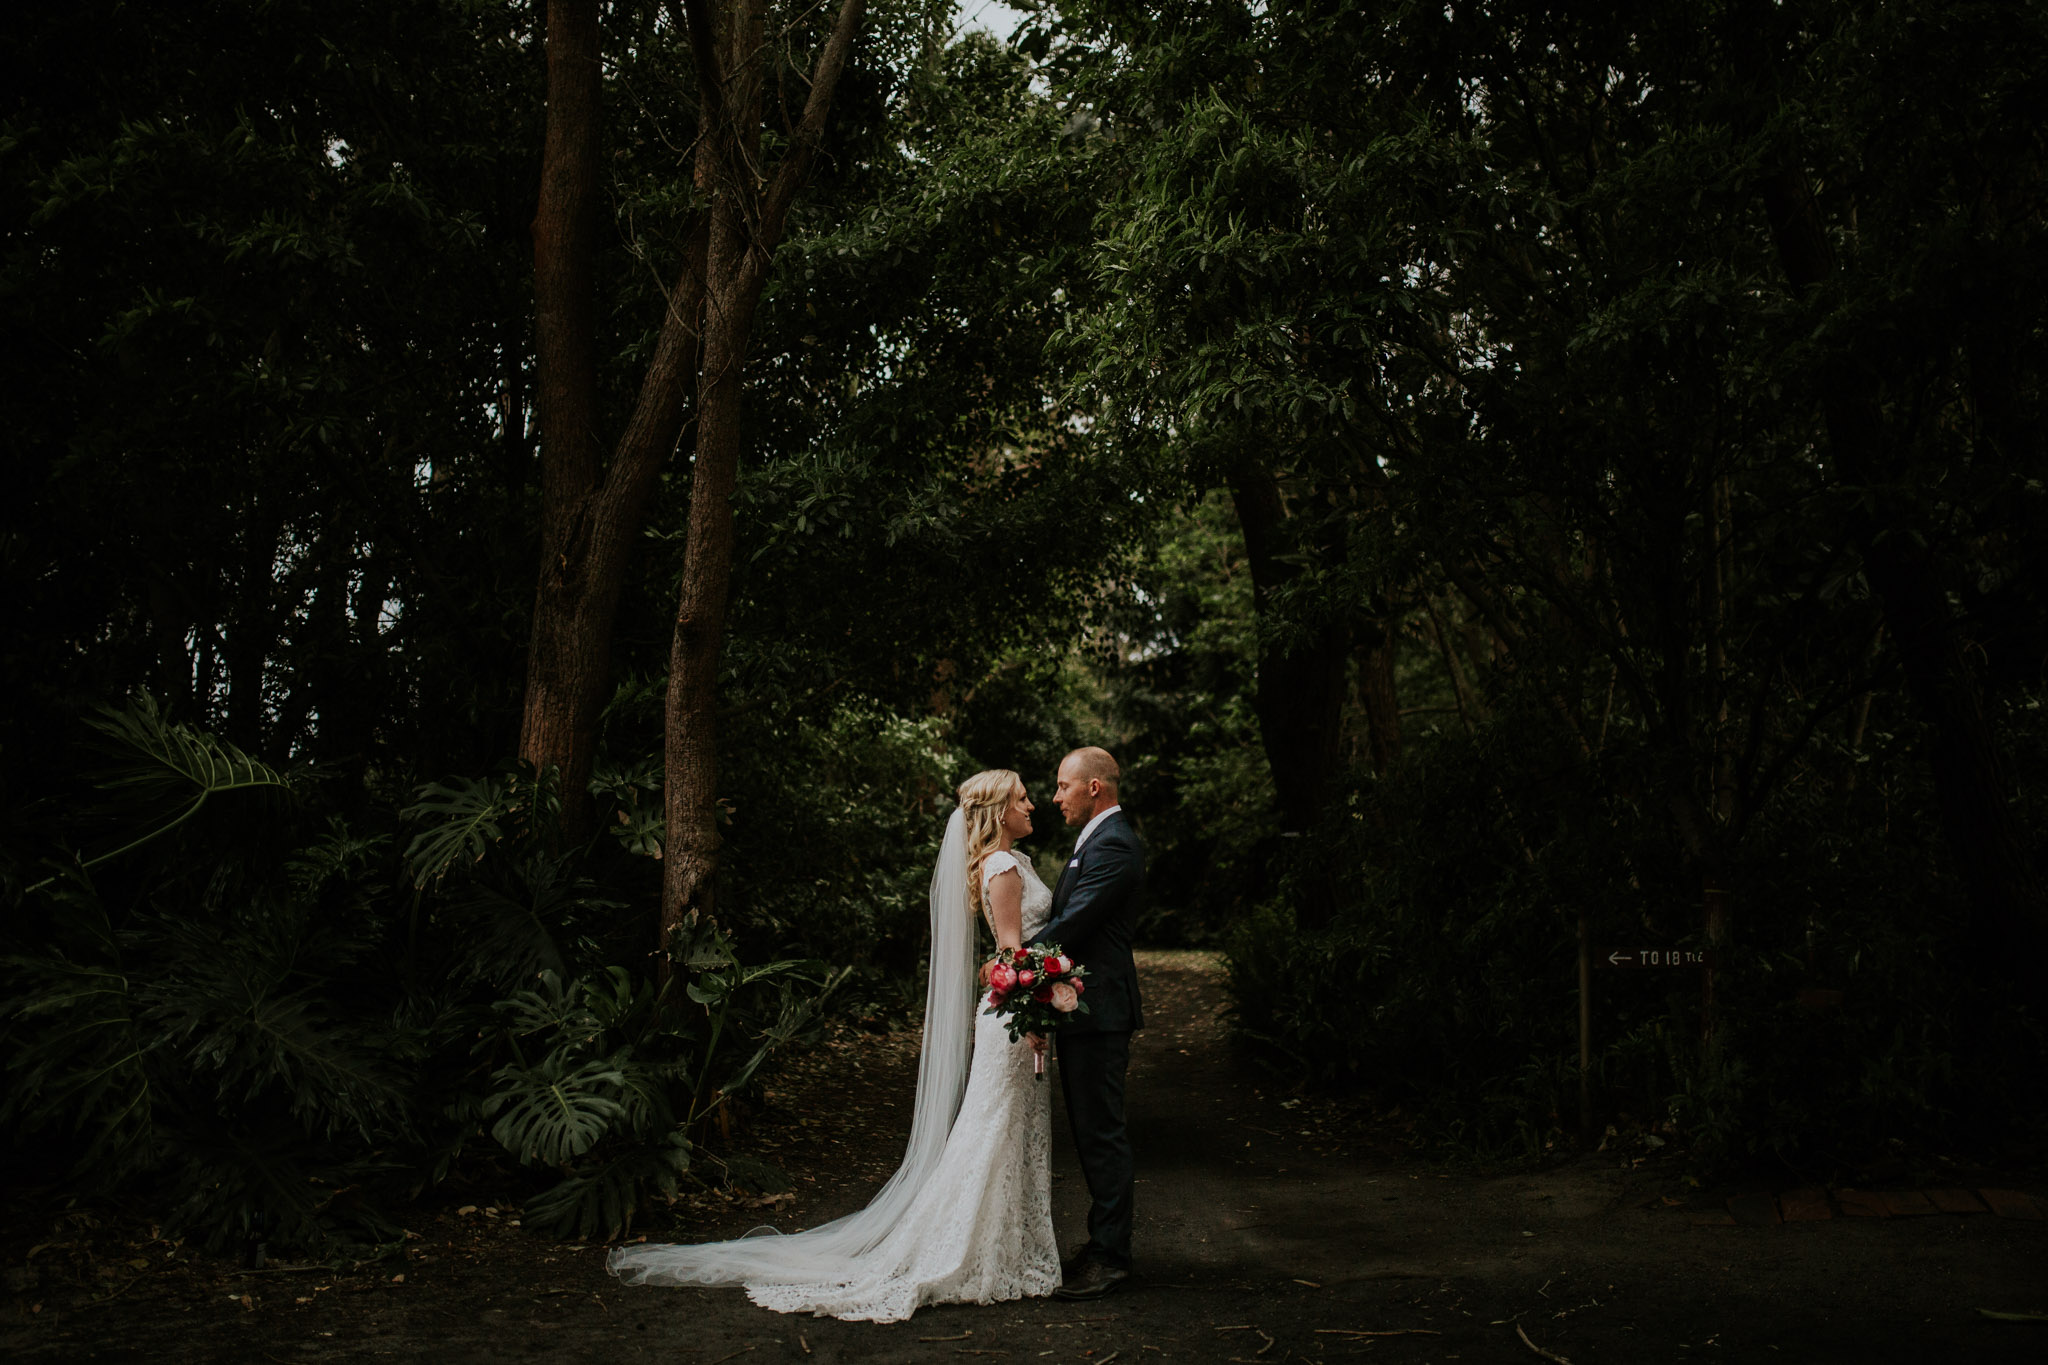 Shanan & Traci_Portkembla Golf Course Wedding-46.jpg